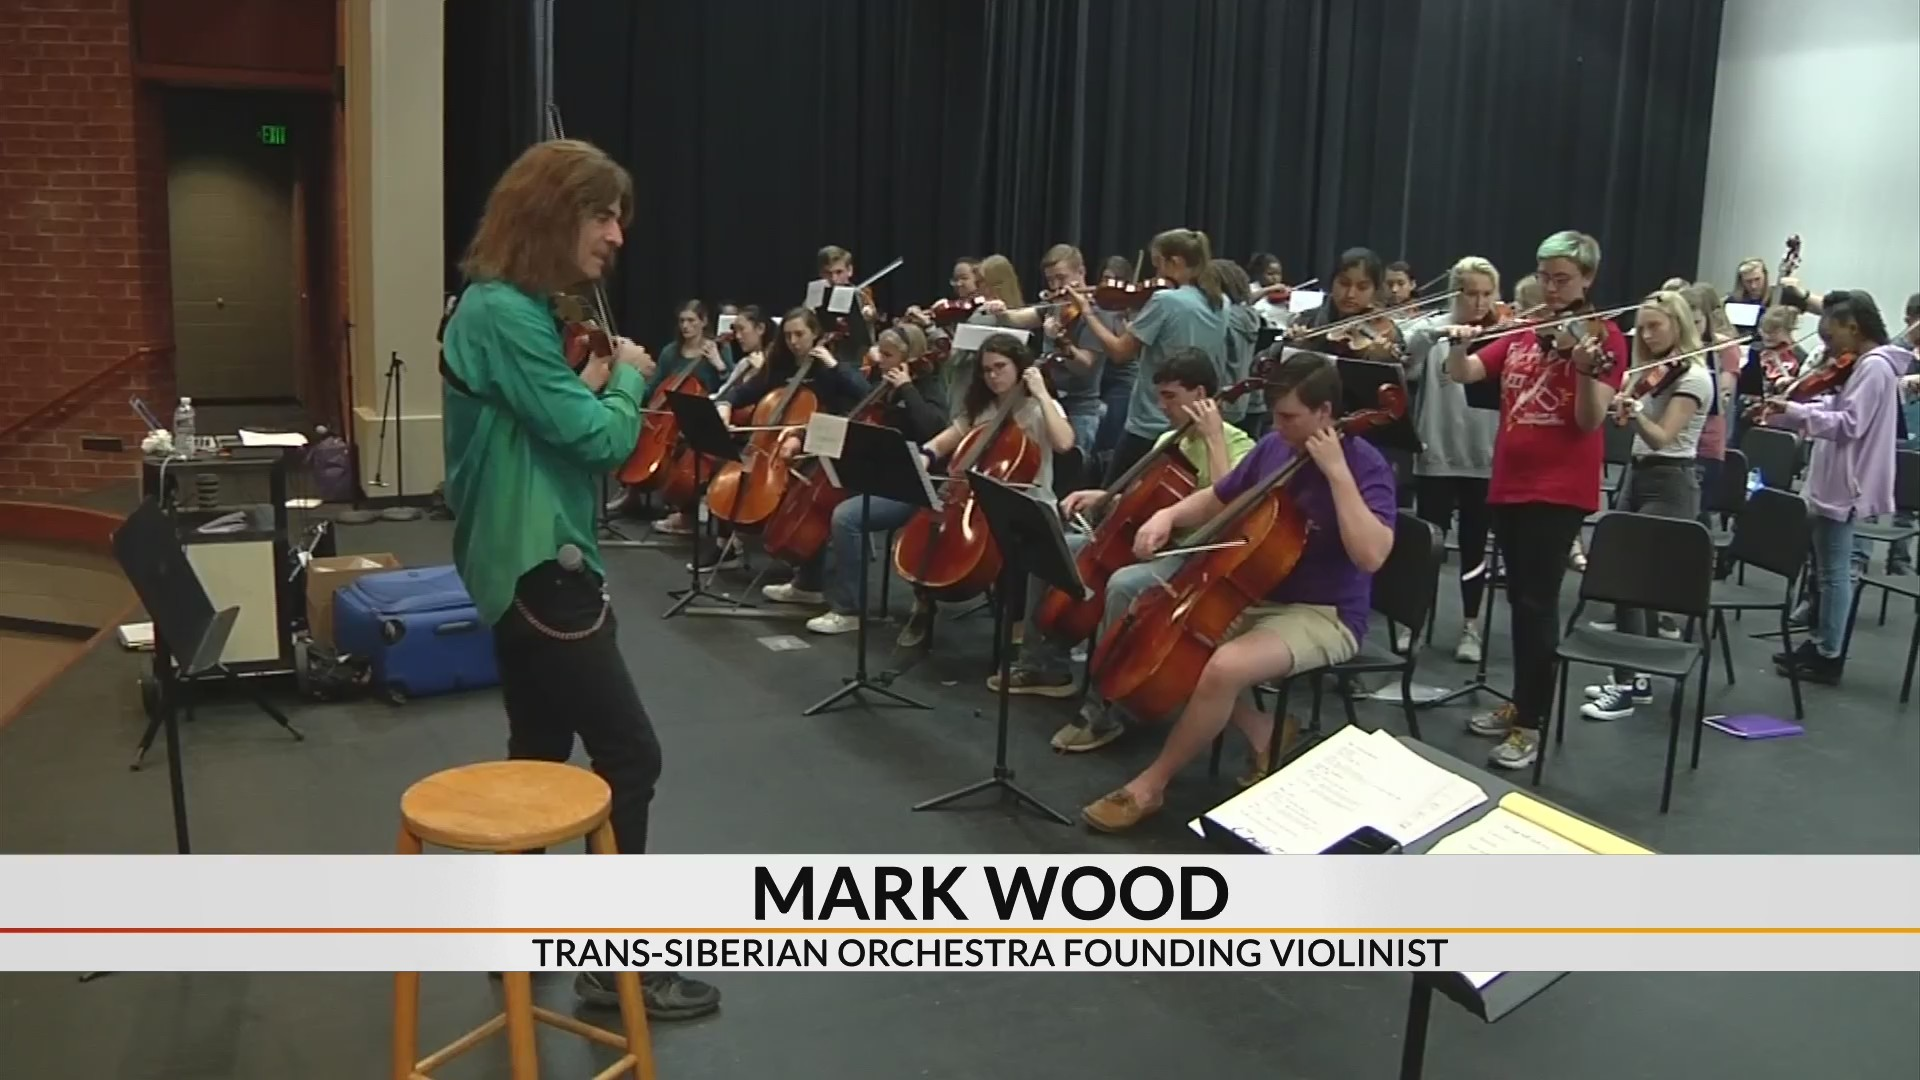 Original Trans-Siberian Orchestra member mentors local students